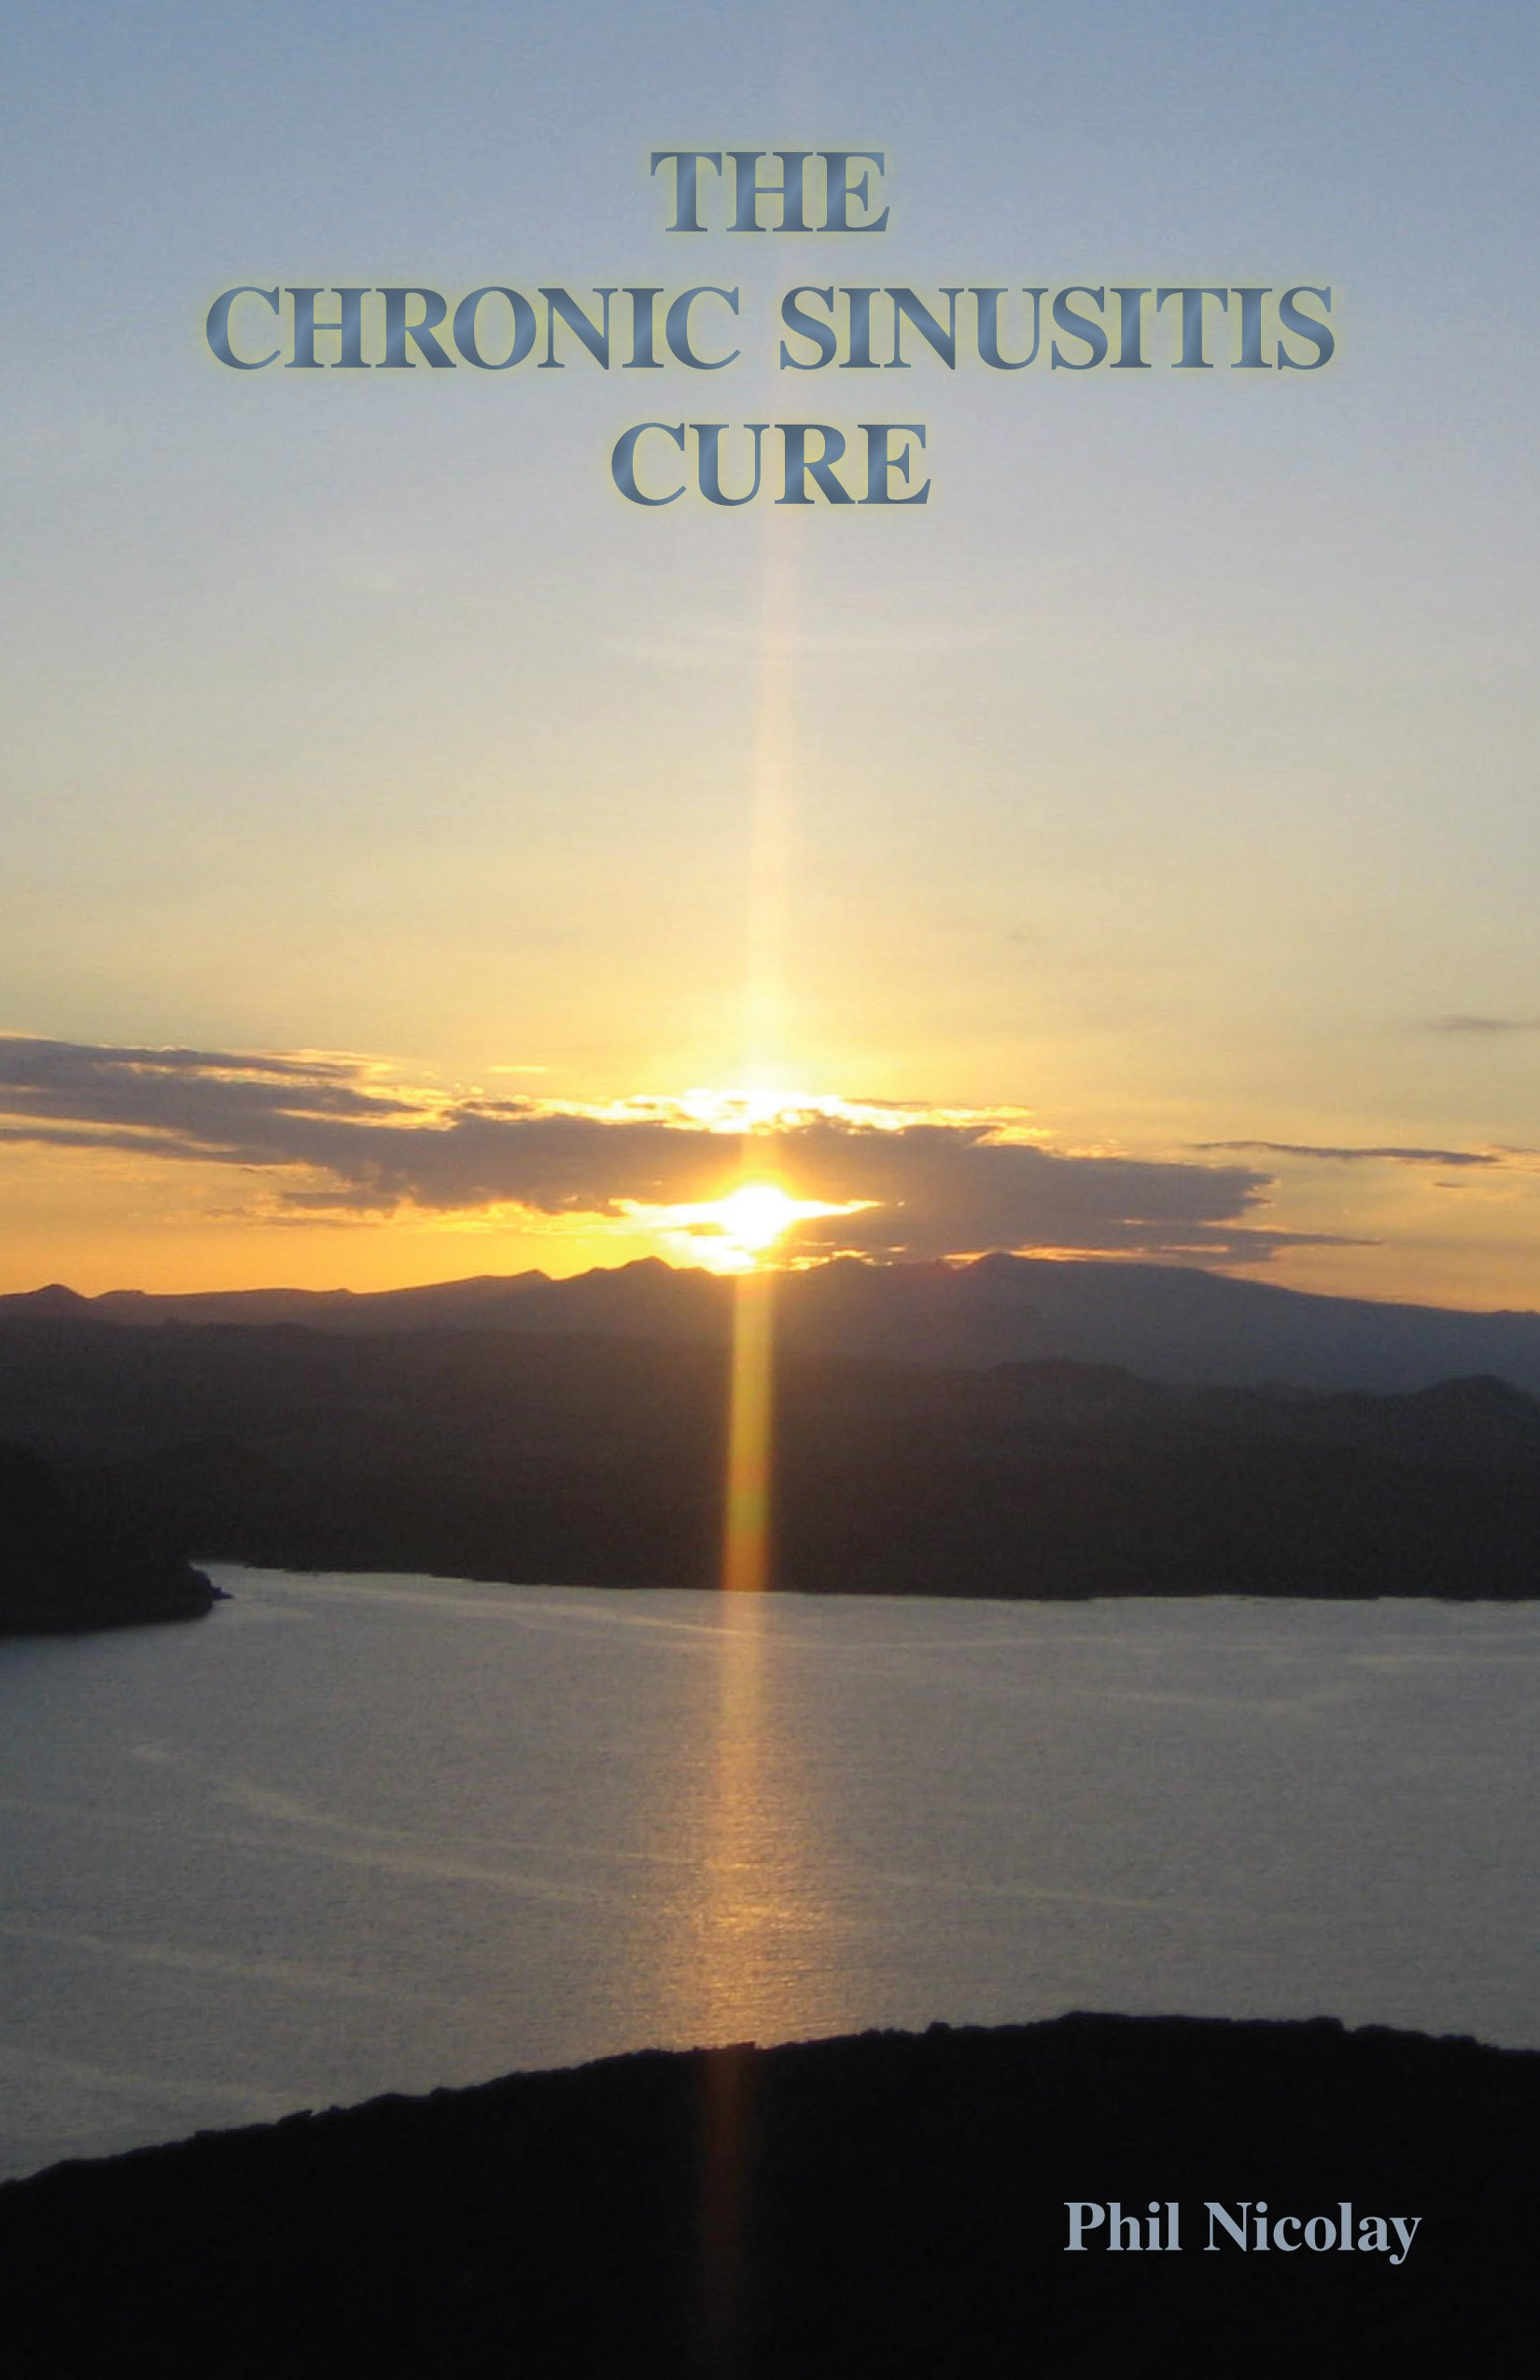 The Chronic Sinusitis Cure: Phil Nicolay: 9780615518510: Amazon: Books